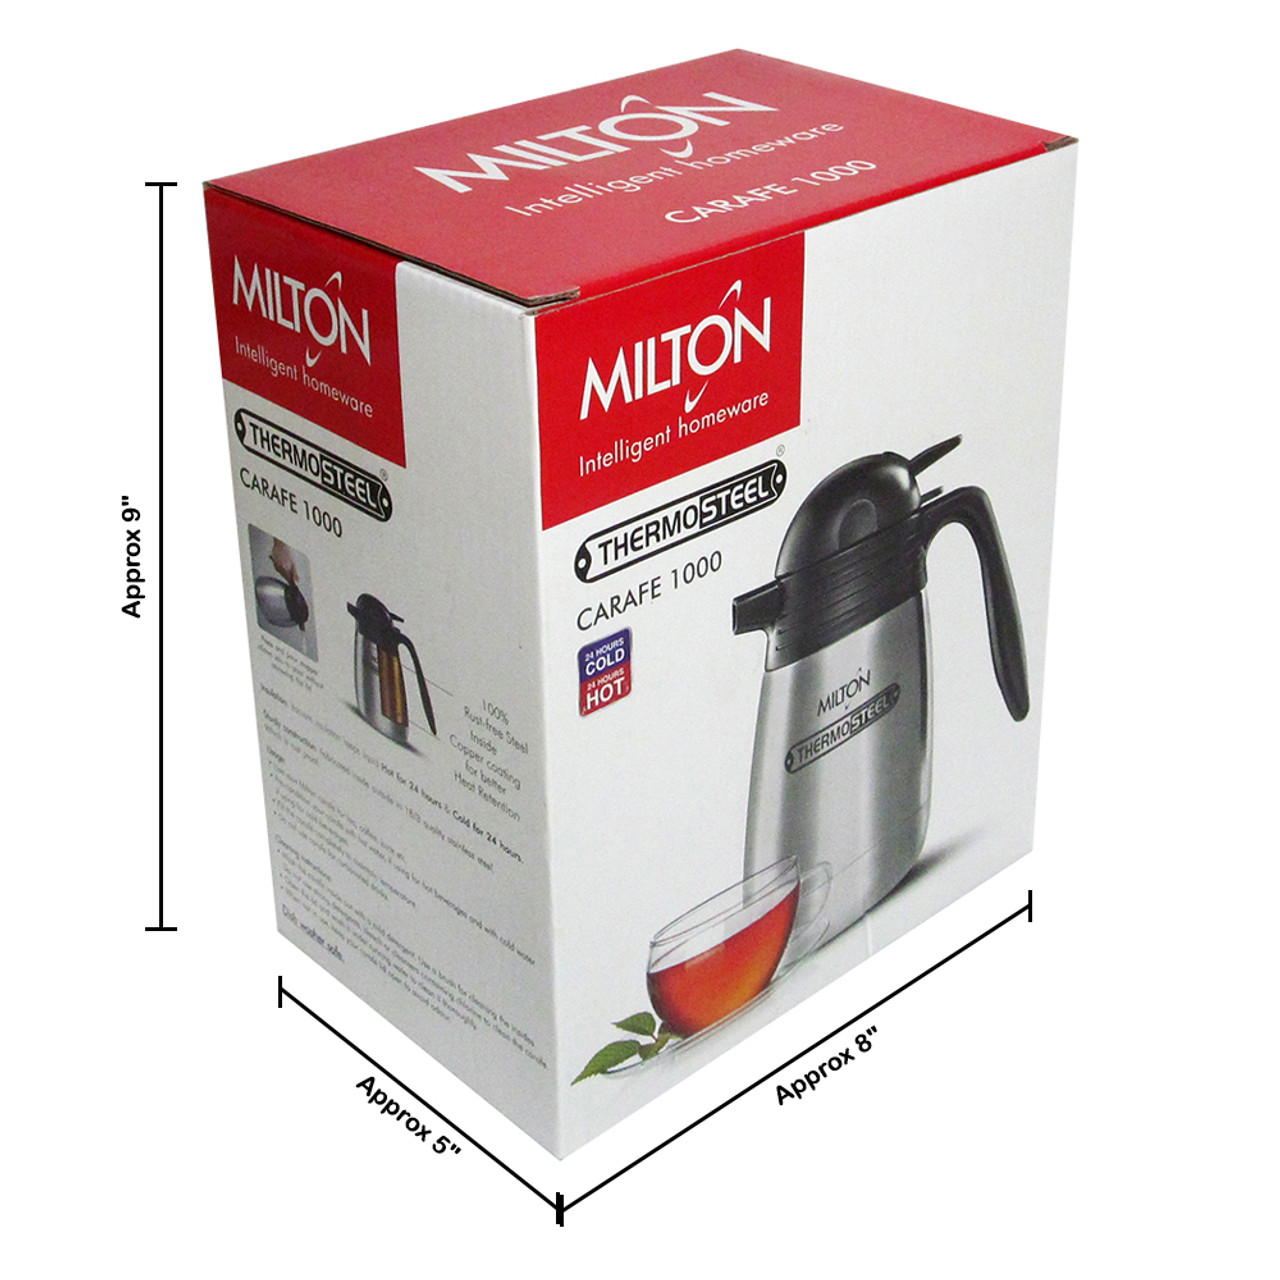 Milton Thermosteel Carafe, 1000 ML Vacuum Insulated Hot And Cold Flask - Image 5